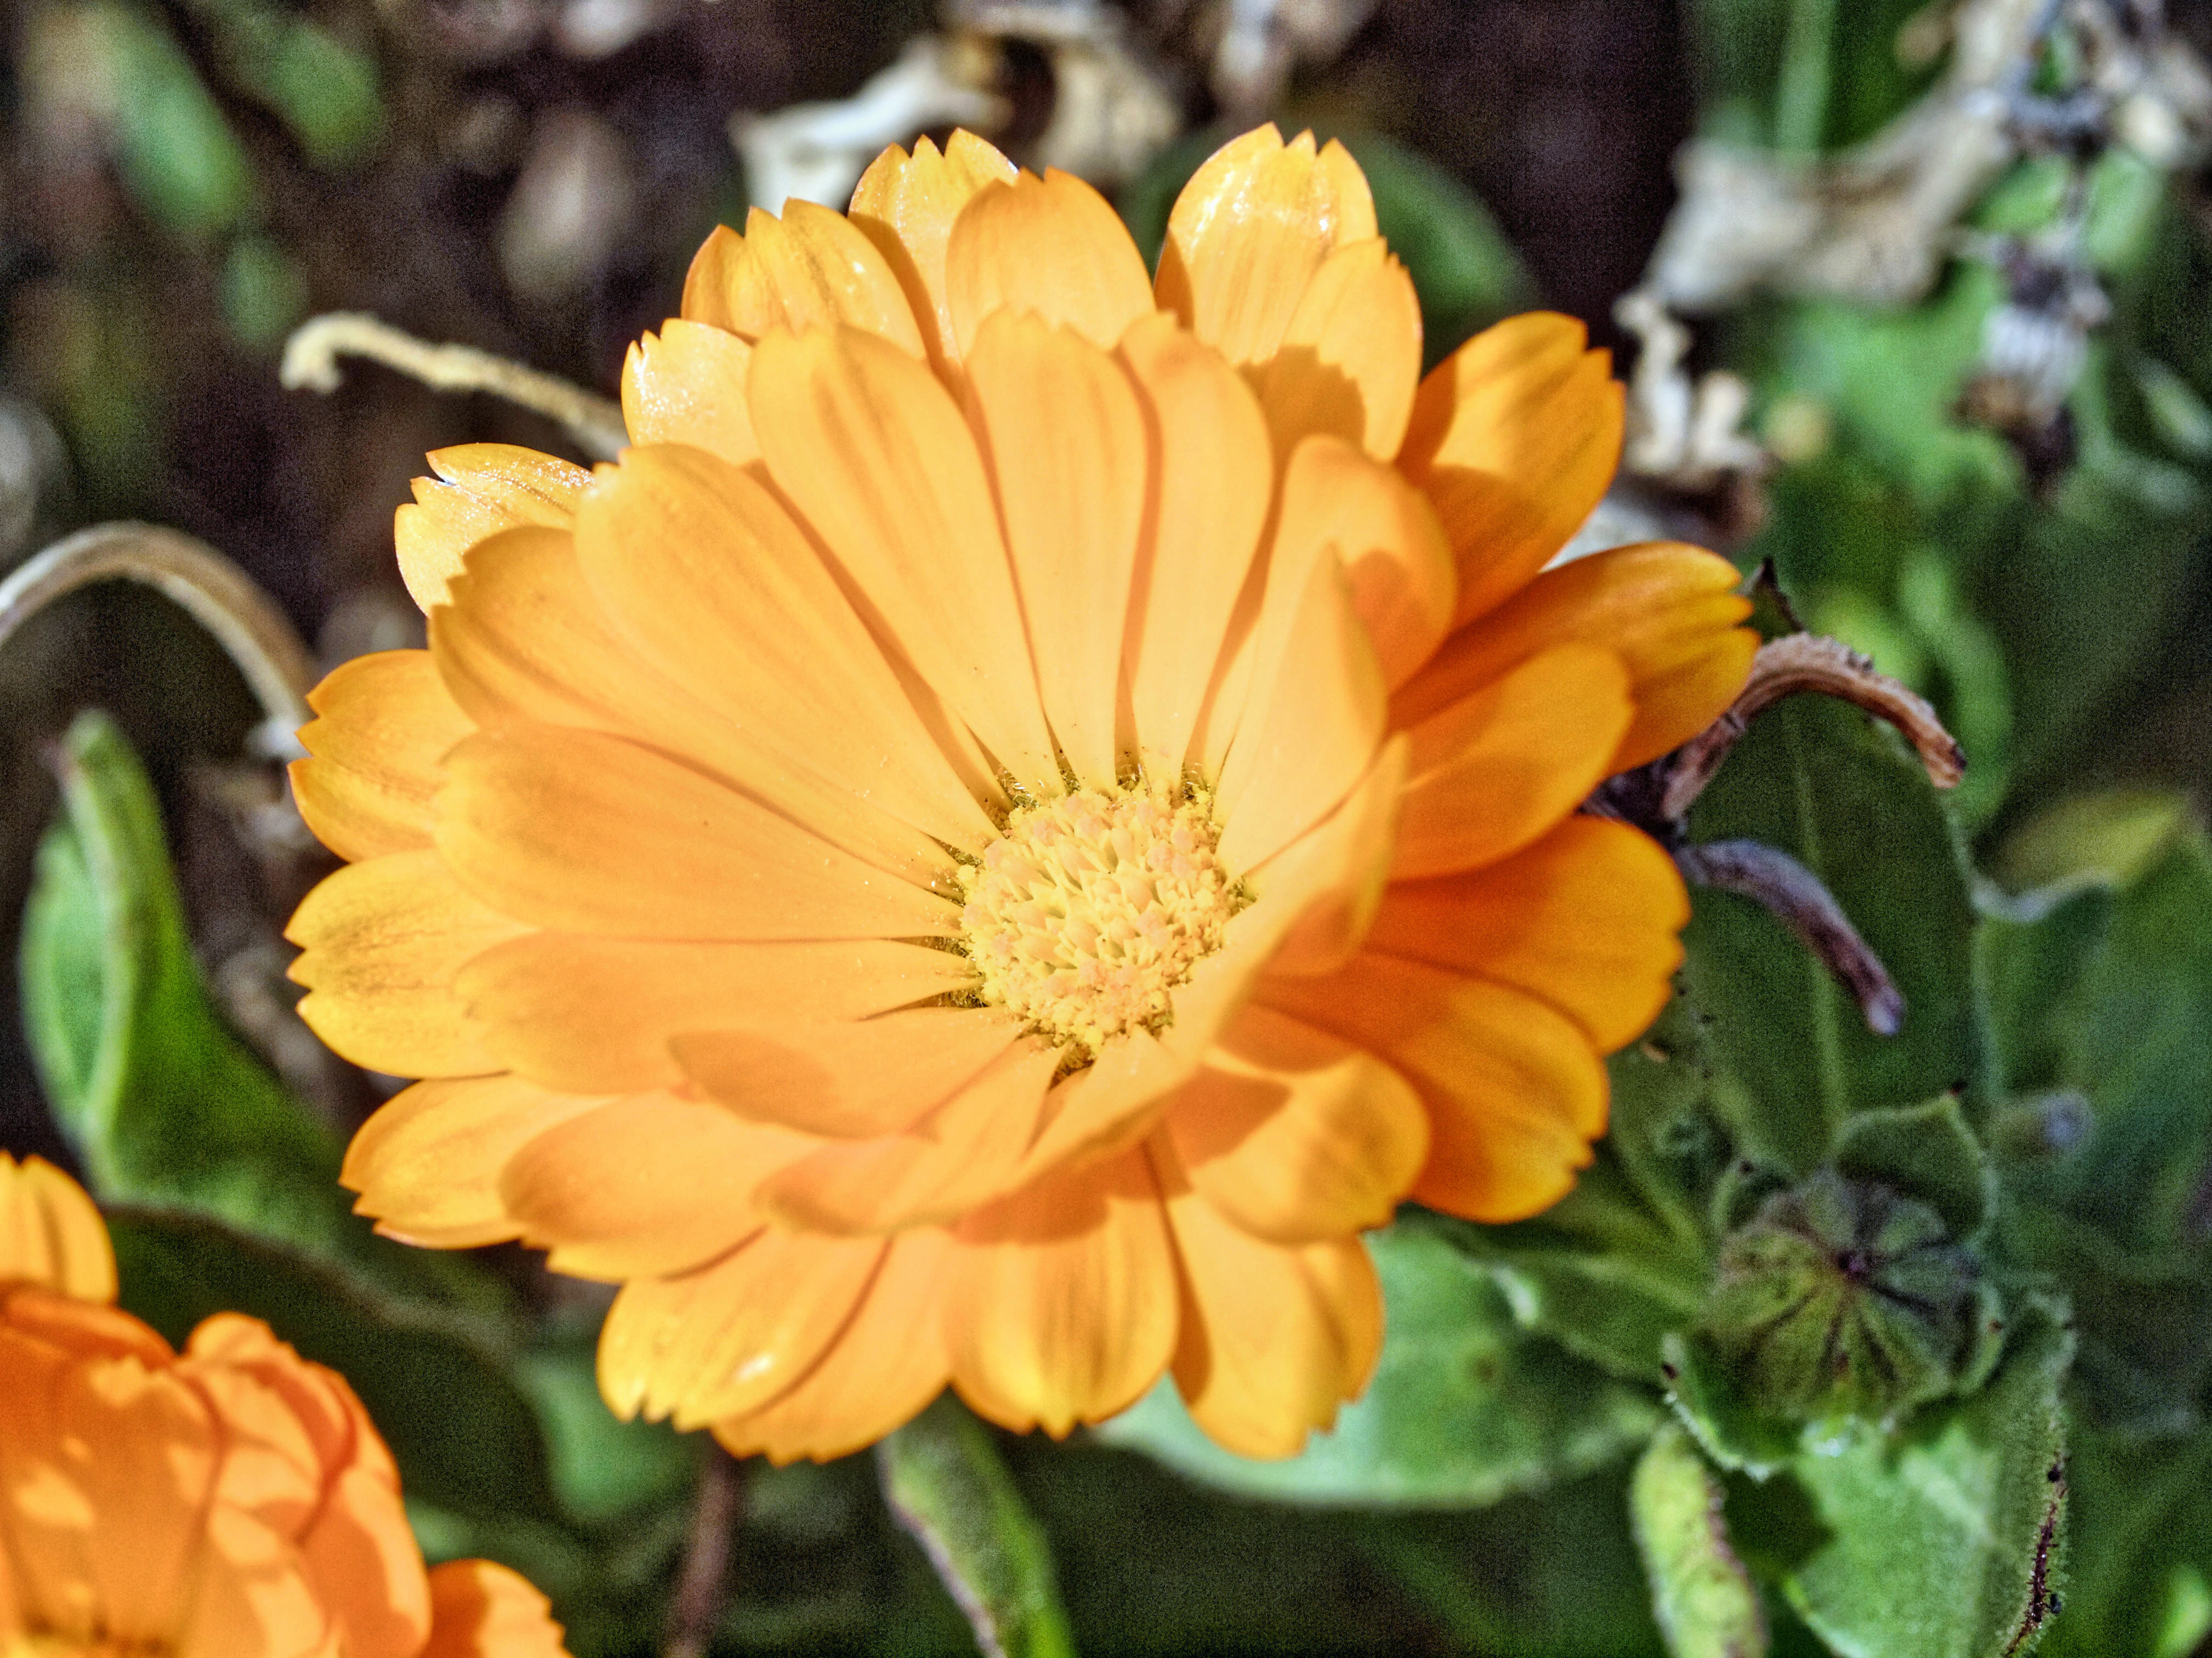 This should be Calendula-2.jpeg.  Is it missing?